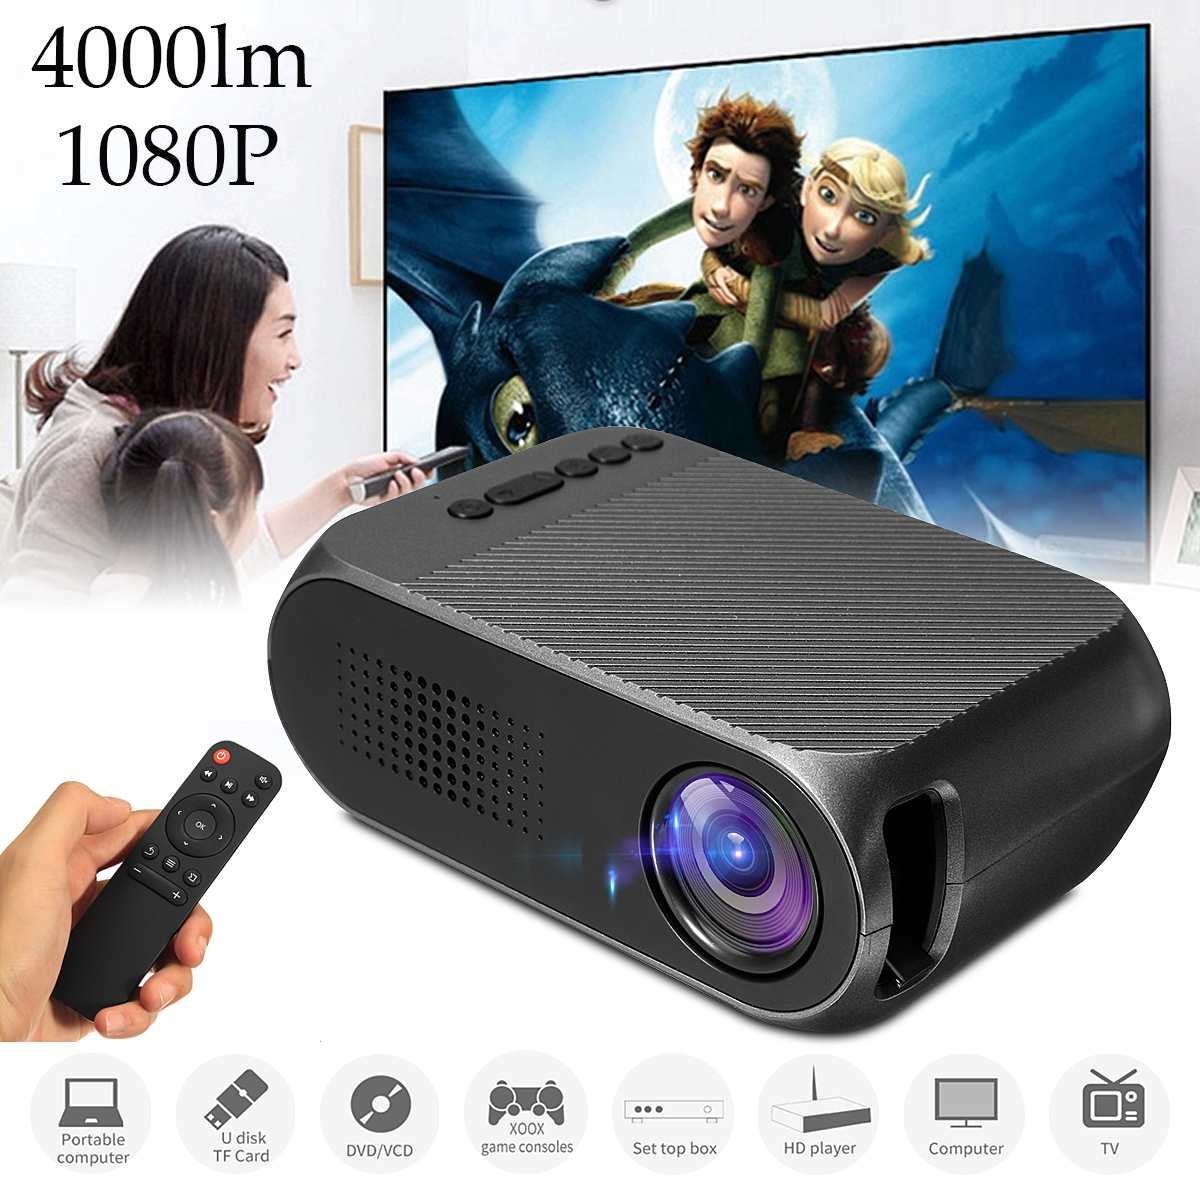 Multi-media Home Cinema Theater LED HD 1080p 3000 hours Mini Projector mini 7000 Lumens HDMI Multimedia Beamer Projector BlackMulti-media Home Cinema Theater LED HD 1080p 3000 hours Mini Projector mini 7000 Lumens HDMI Multimedia Beamer Projector Black